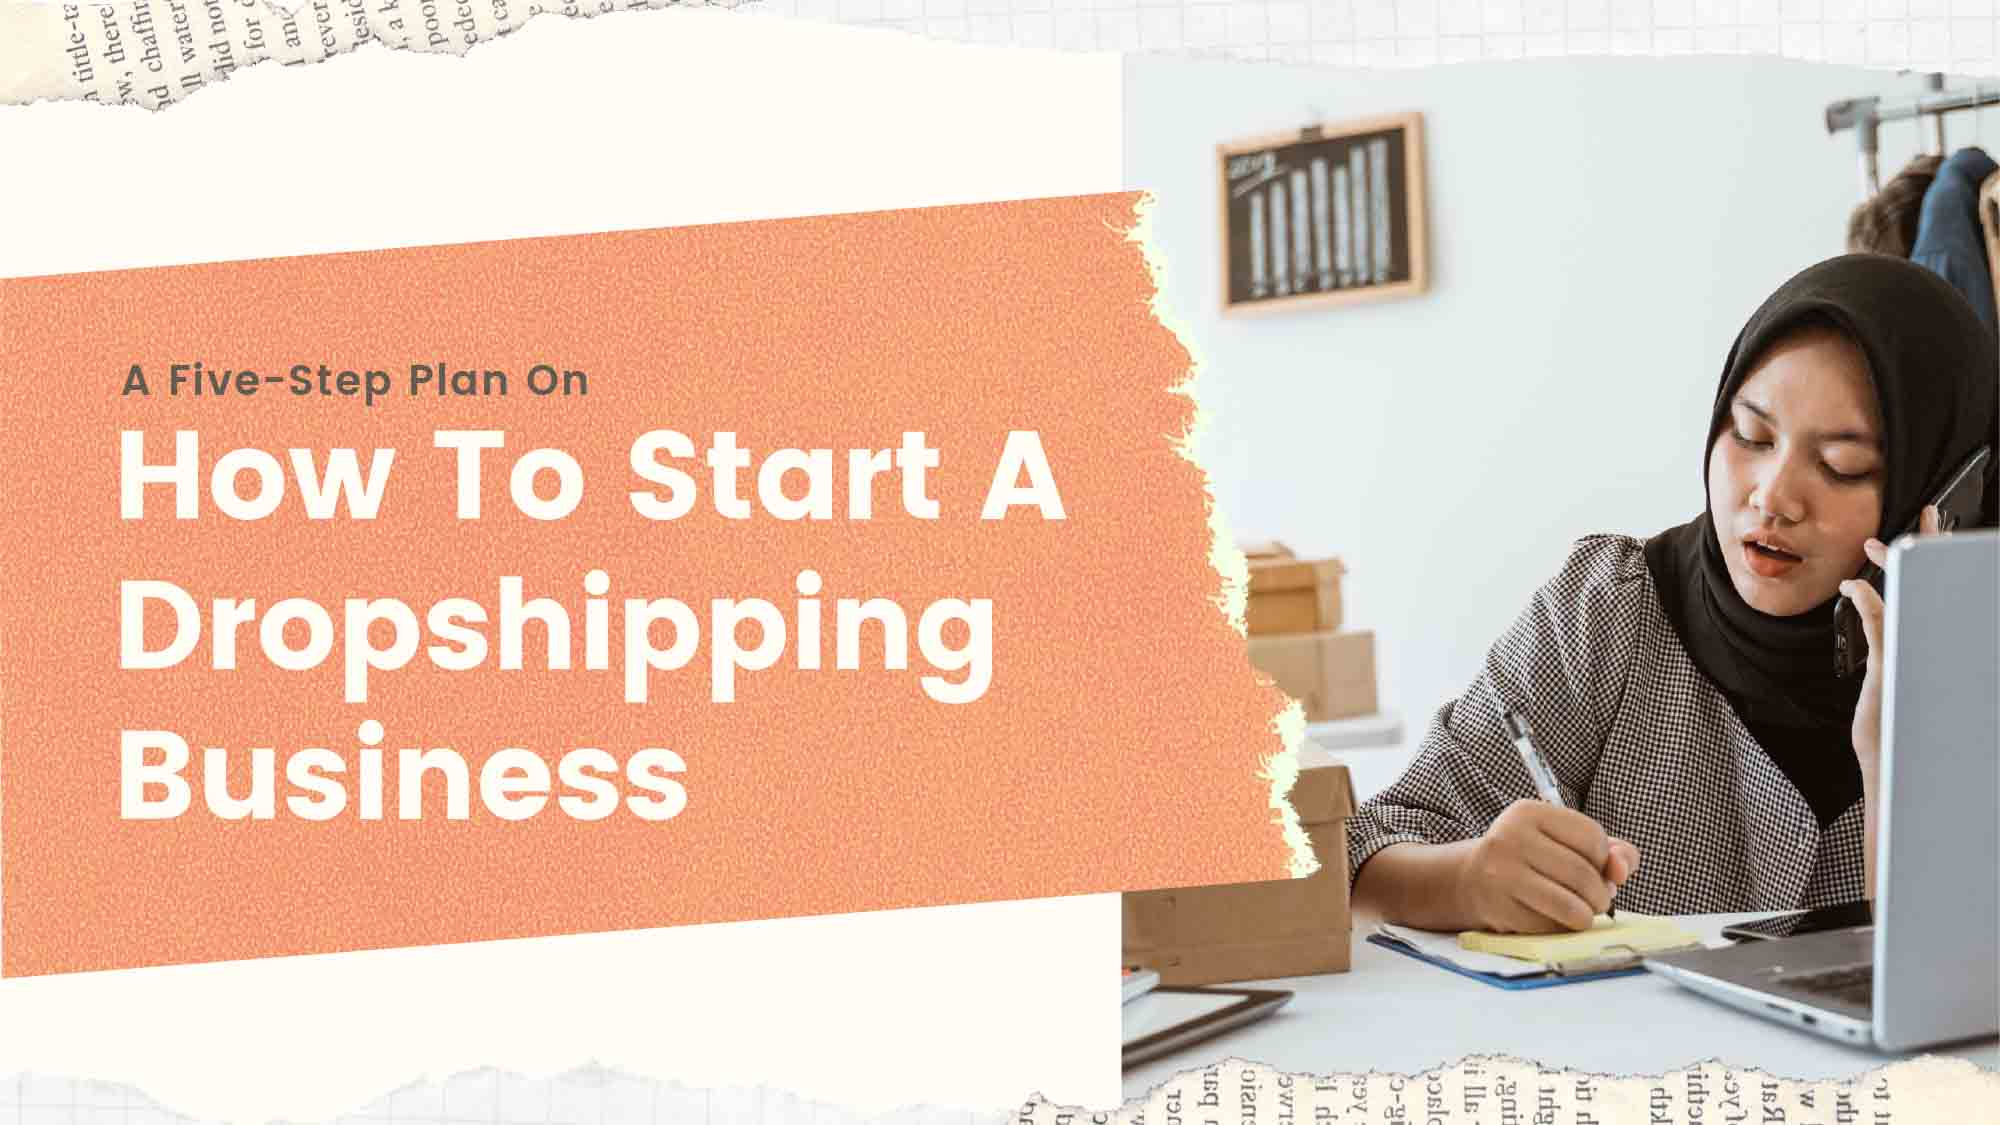 A Five-Step Plan On How To Start A Dropshipping Business